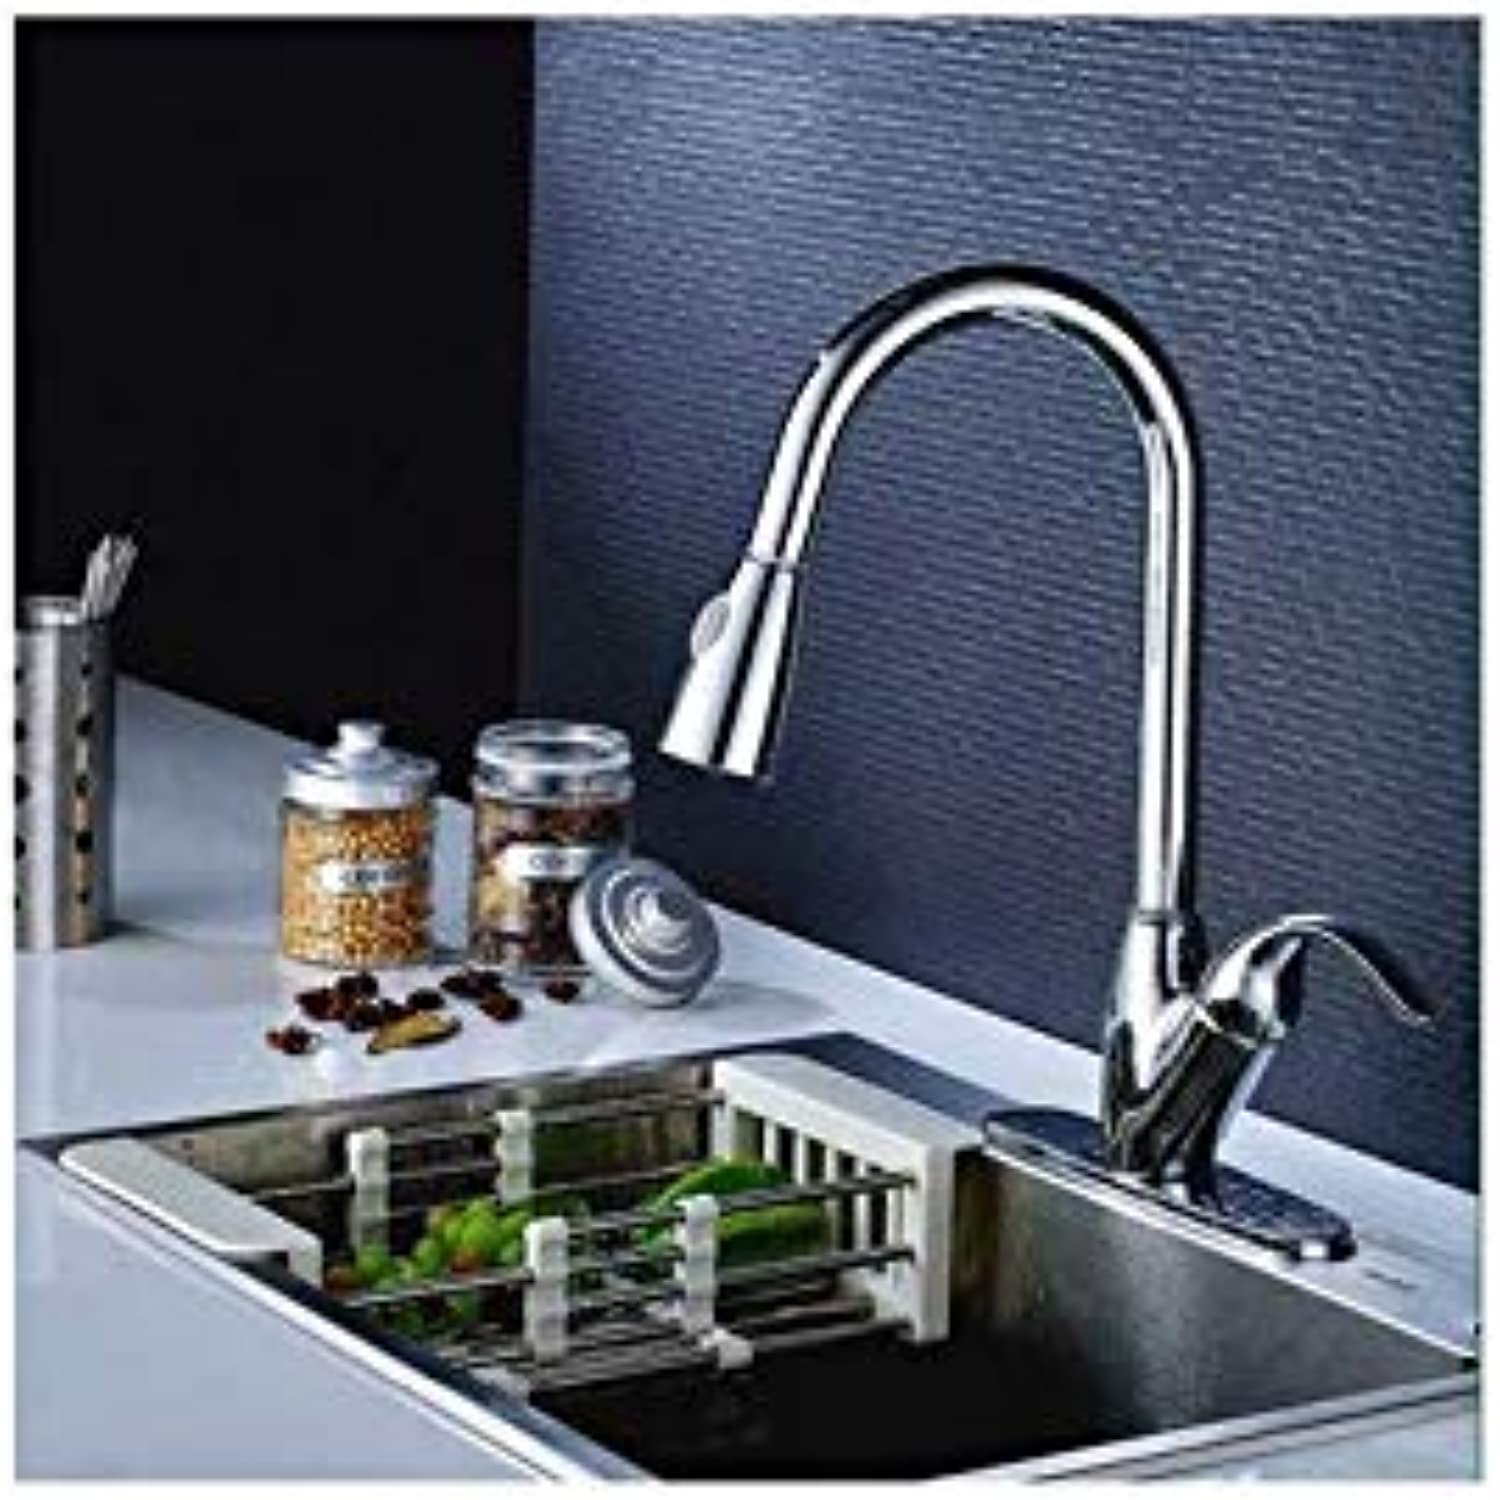 Kitchen Faucet All Around redate Swivel 2-Function Water Outlet Deck Mounted Single Hole with 3 Hole Cover Plate Water